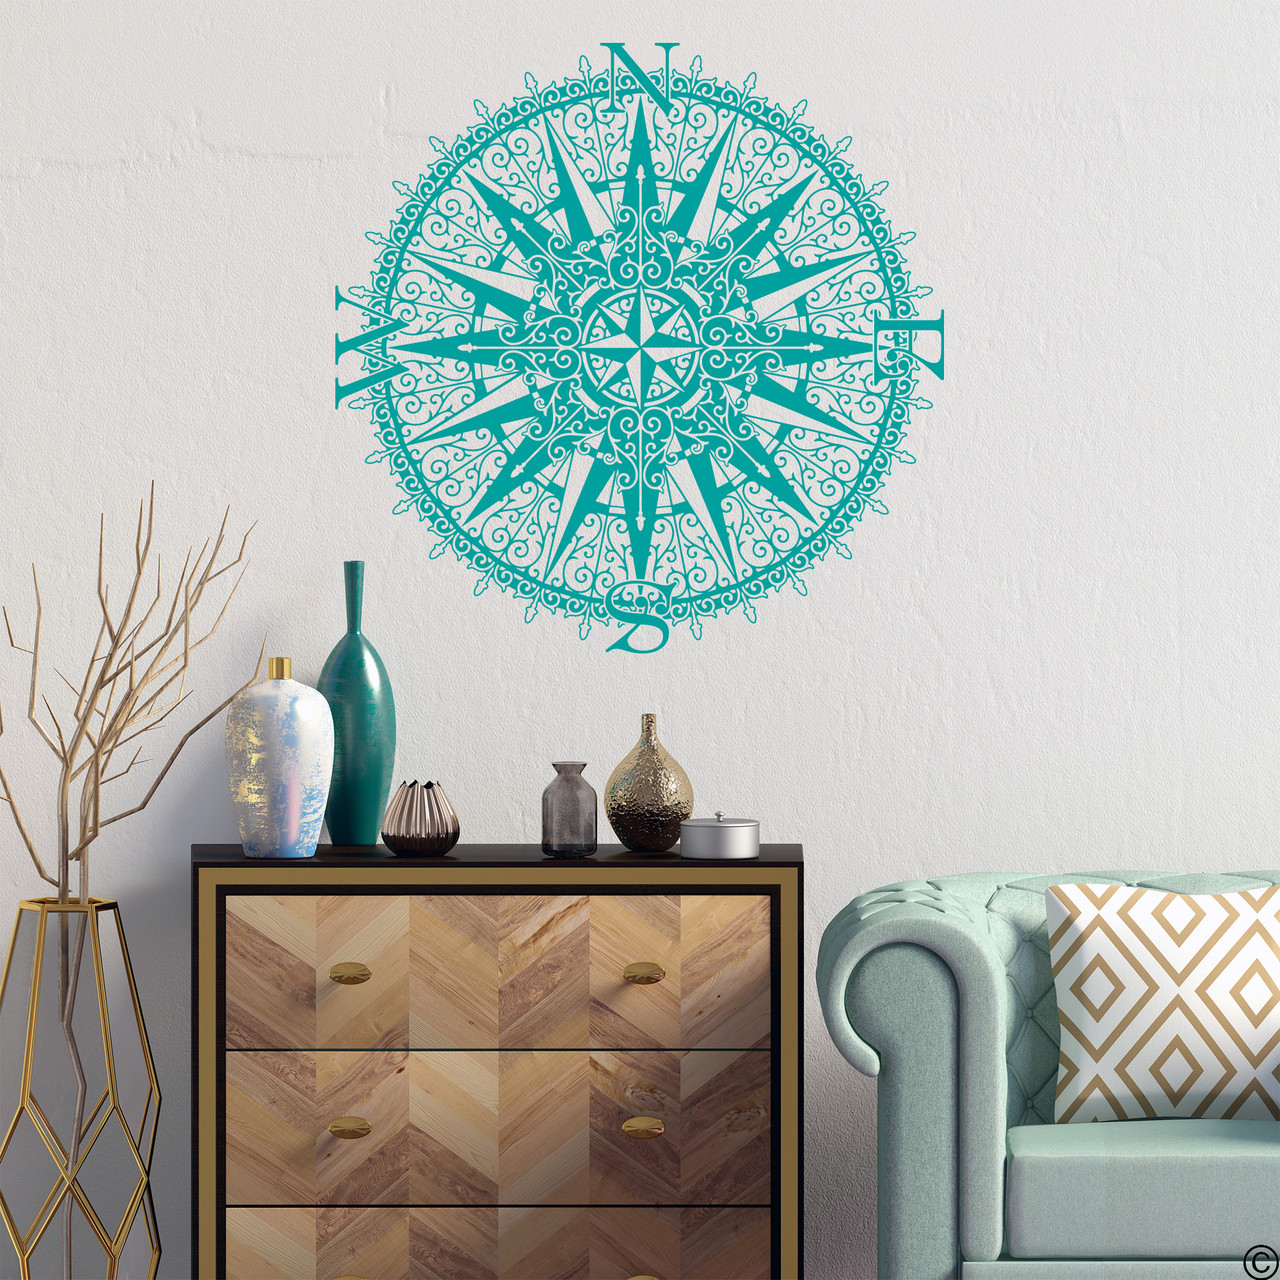 The Sherlock compass wall decal, shown here in turquoise color.